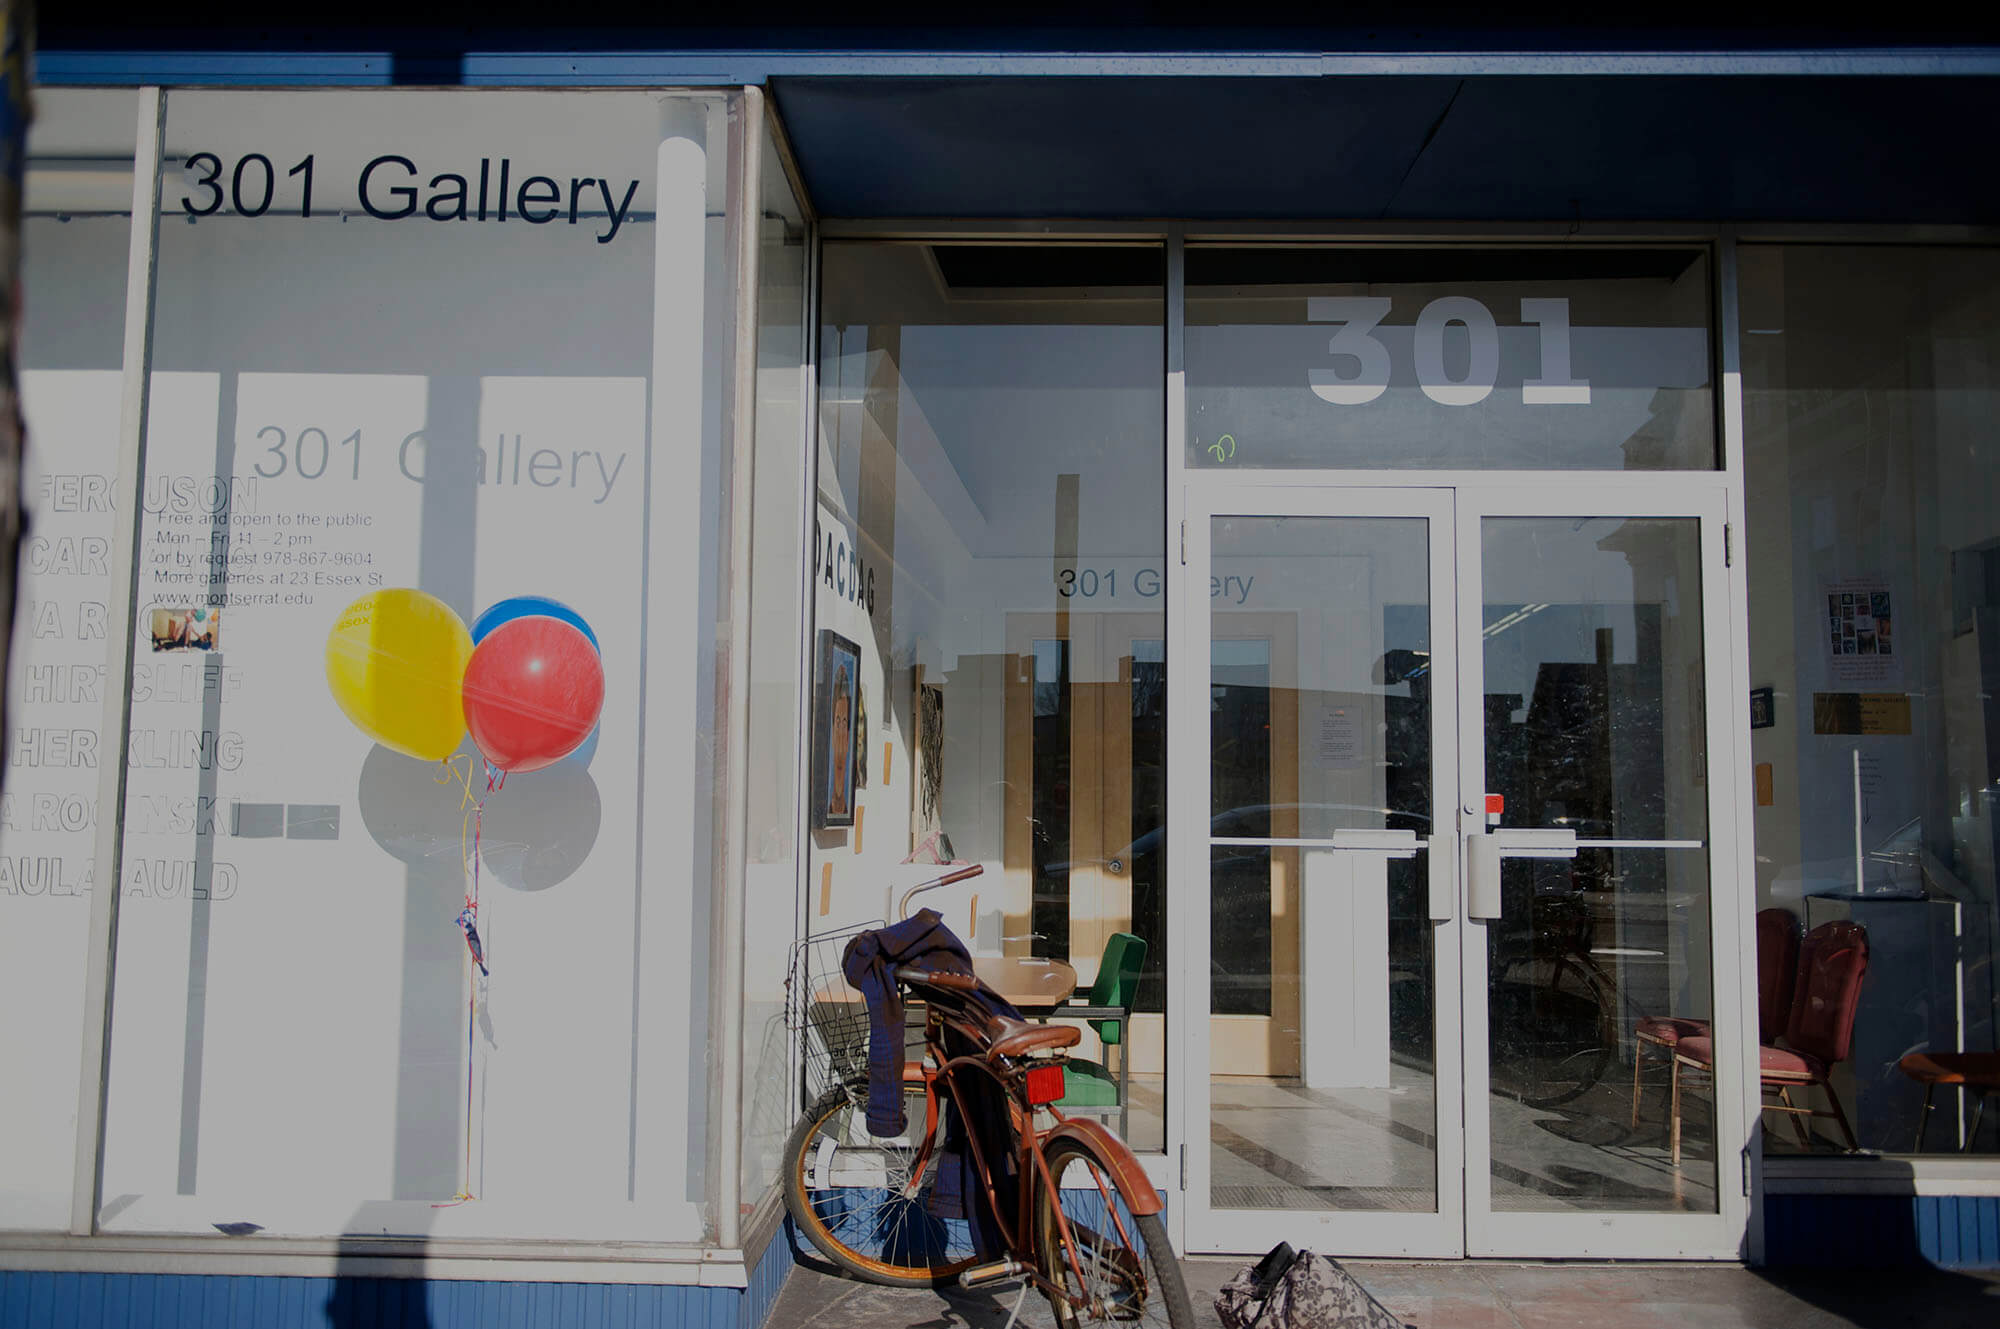 301 Gallery